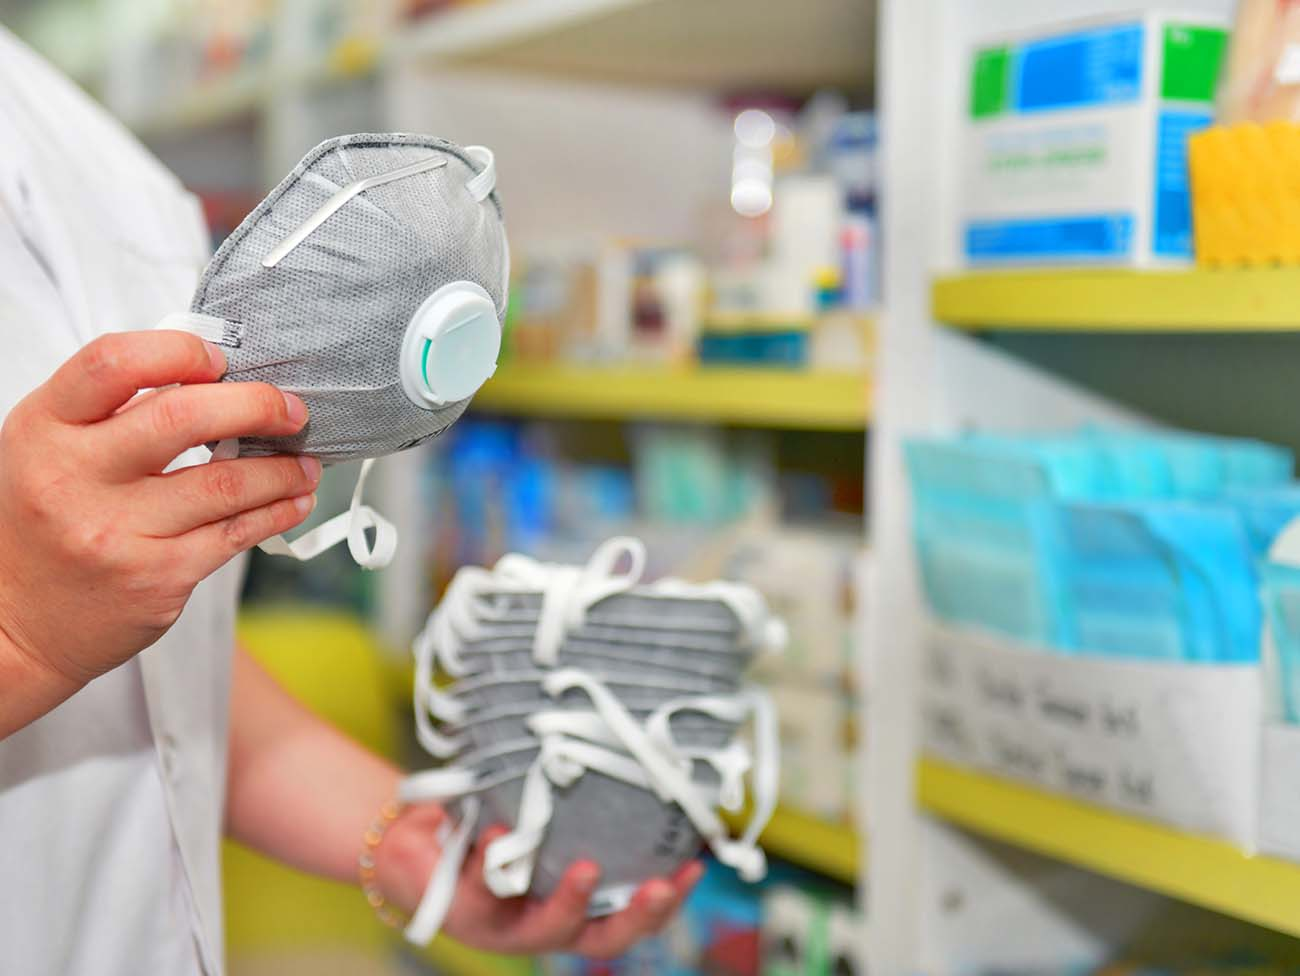 Pharmacist hand holding N95 mask in pharmacy drugstore